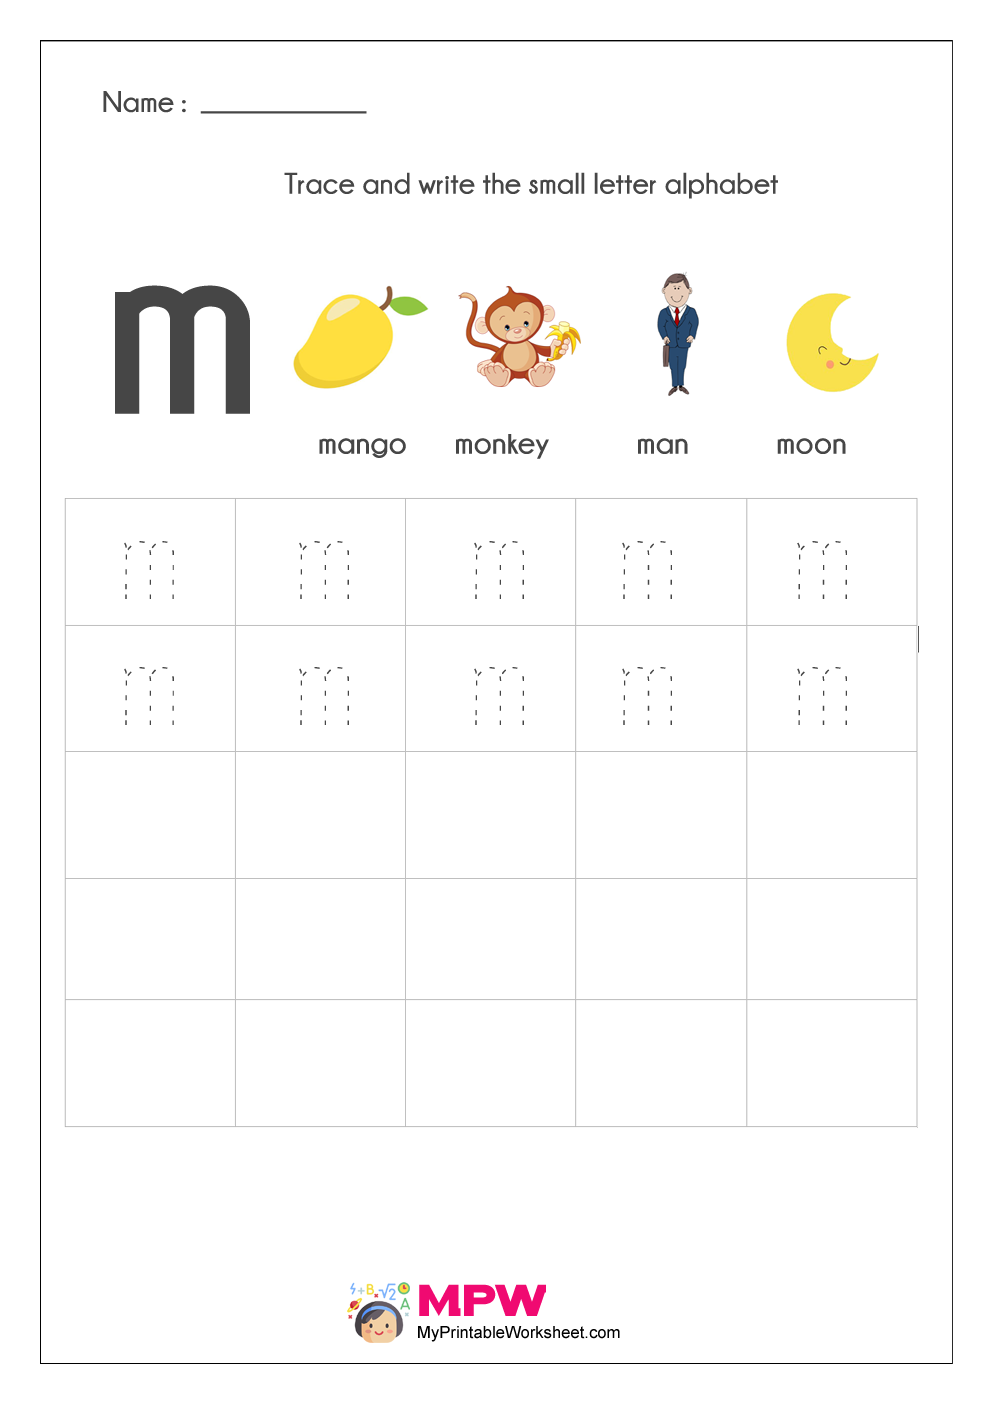 Small Letter Alphabets Tracing And Writing Worksheets Printable with regard to Letter M Tracing Worksheet